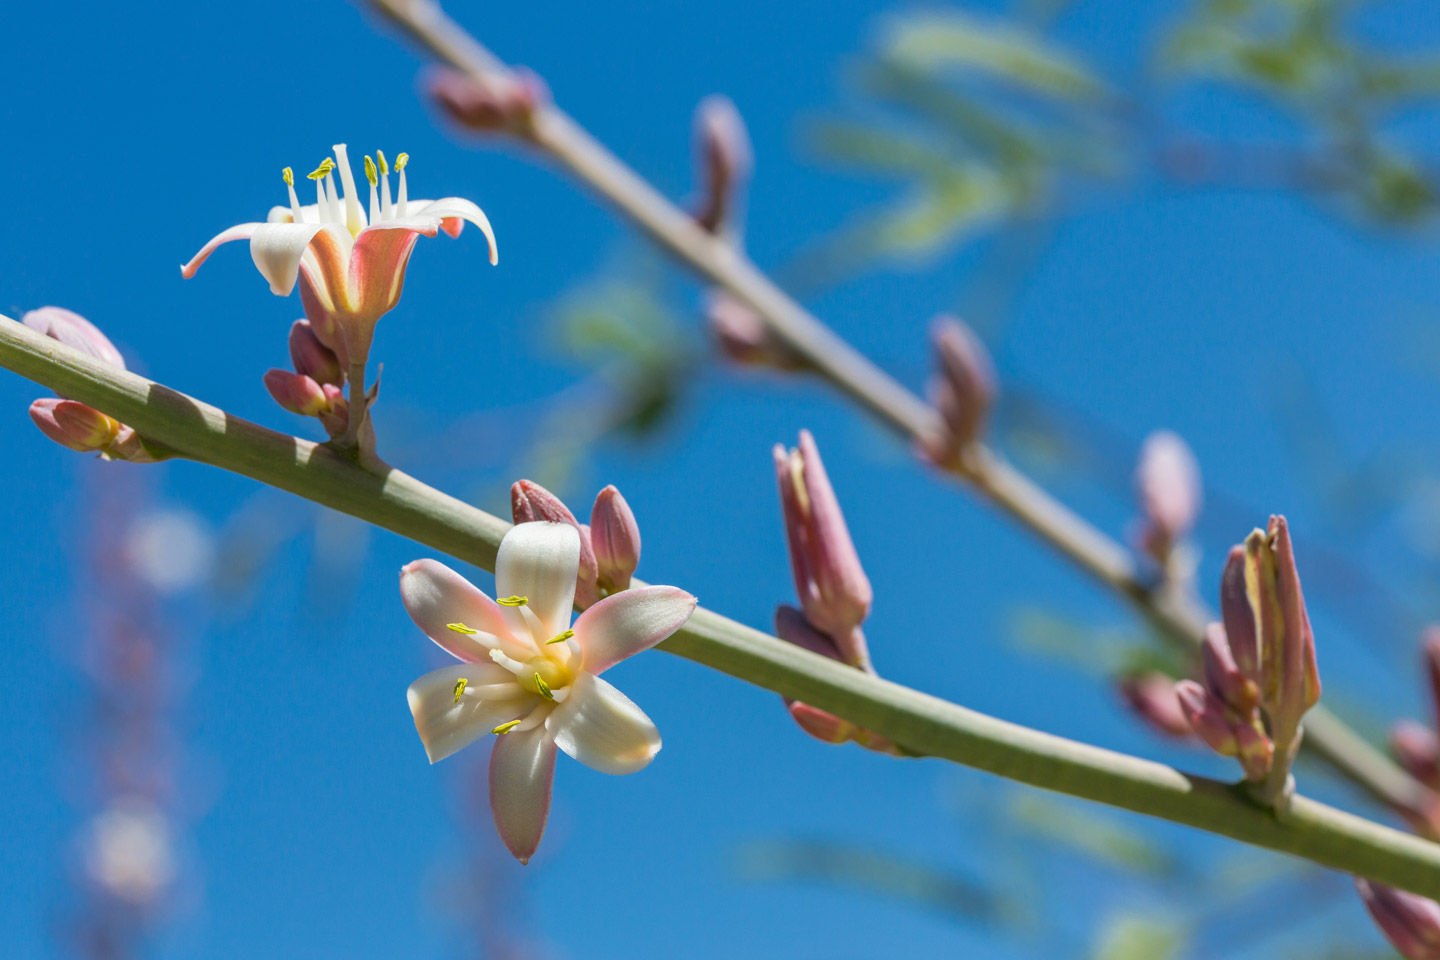 A close-up of Giant Hesperaloe flowers against a blue sky.